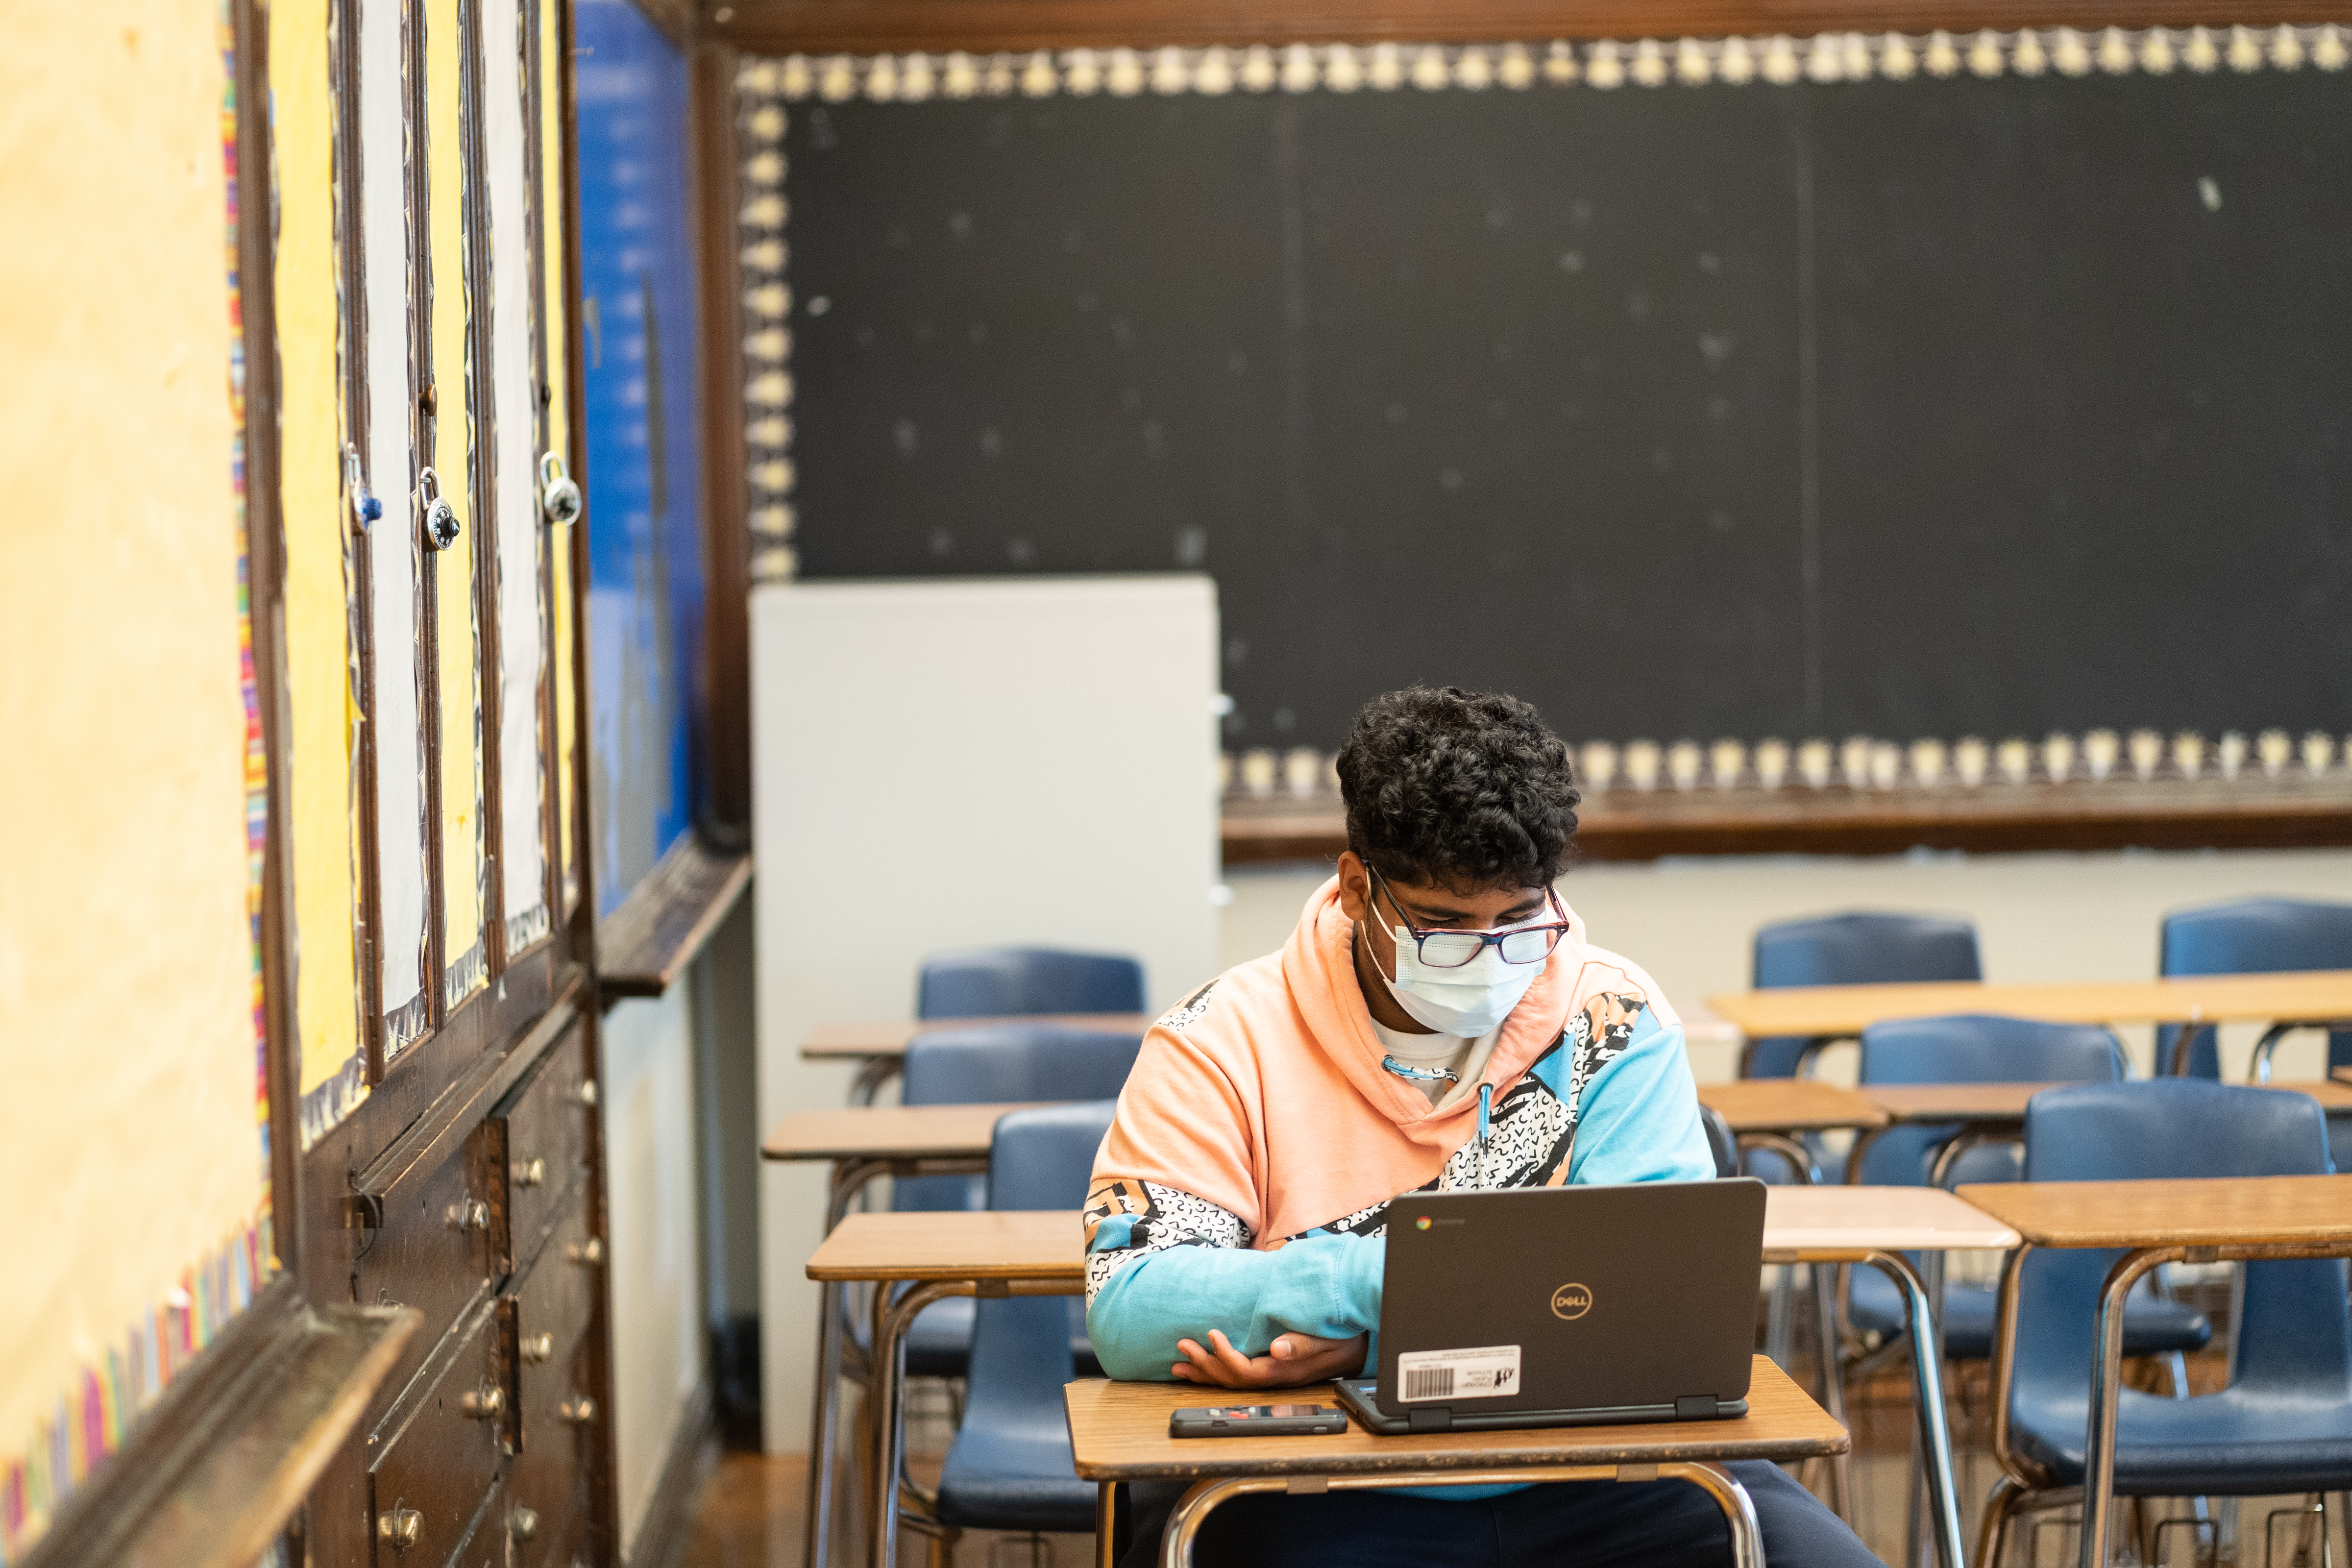 High school student Nathaniel Martinez, in a mask and orange and blue-colored hoodie, sits at a desk with a laptop in a Roosevelt High School classroom full or other empty desks and a chalkboard on the wall in the back.